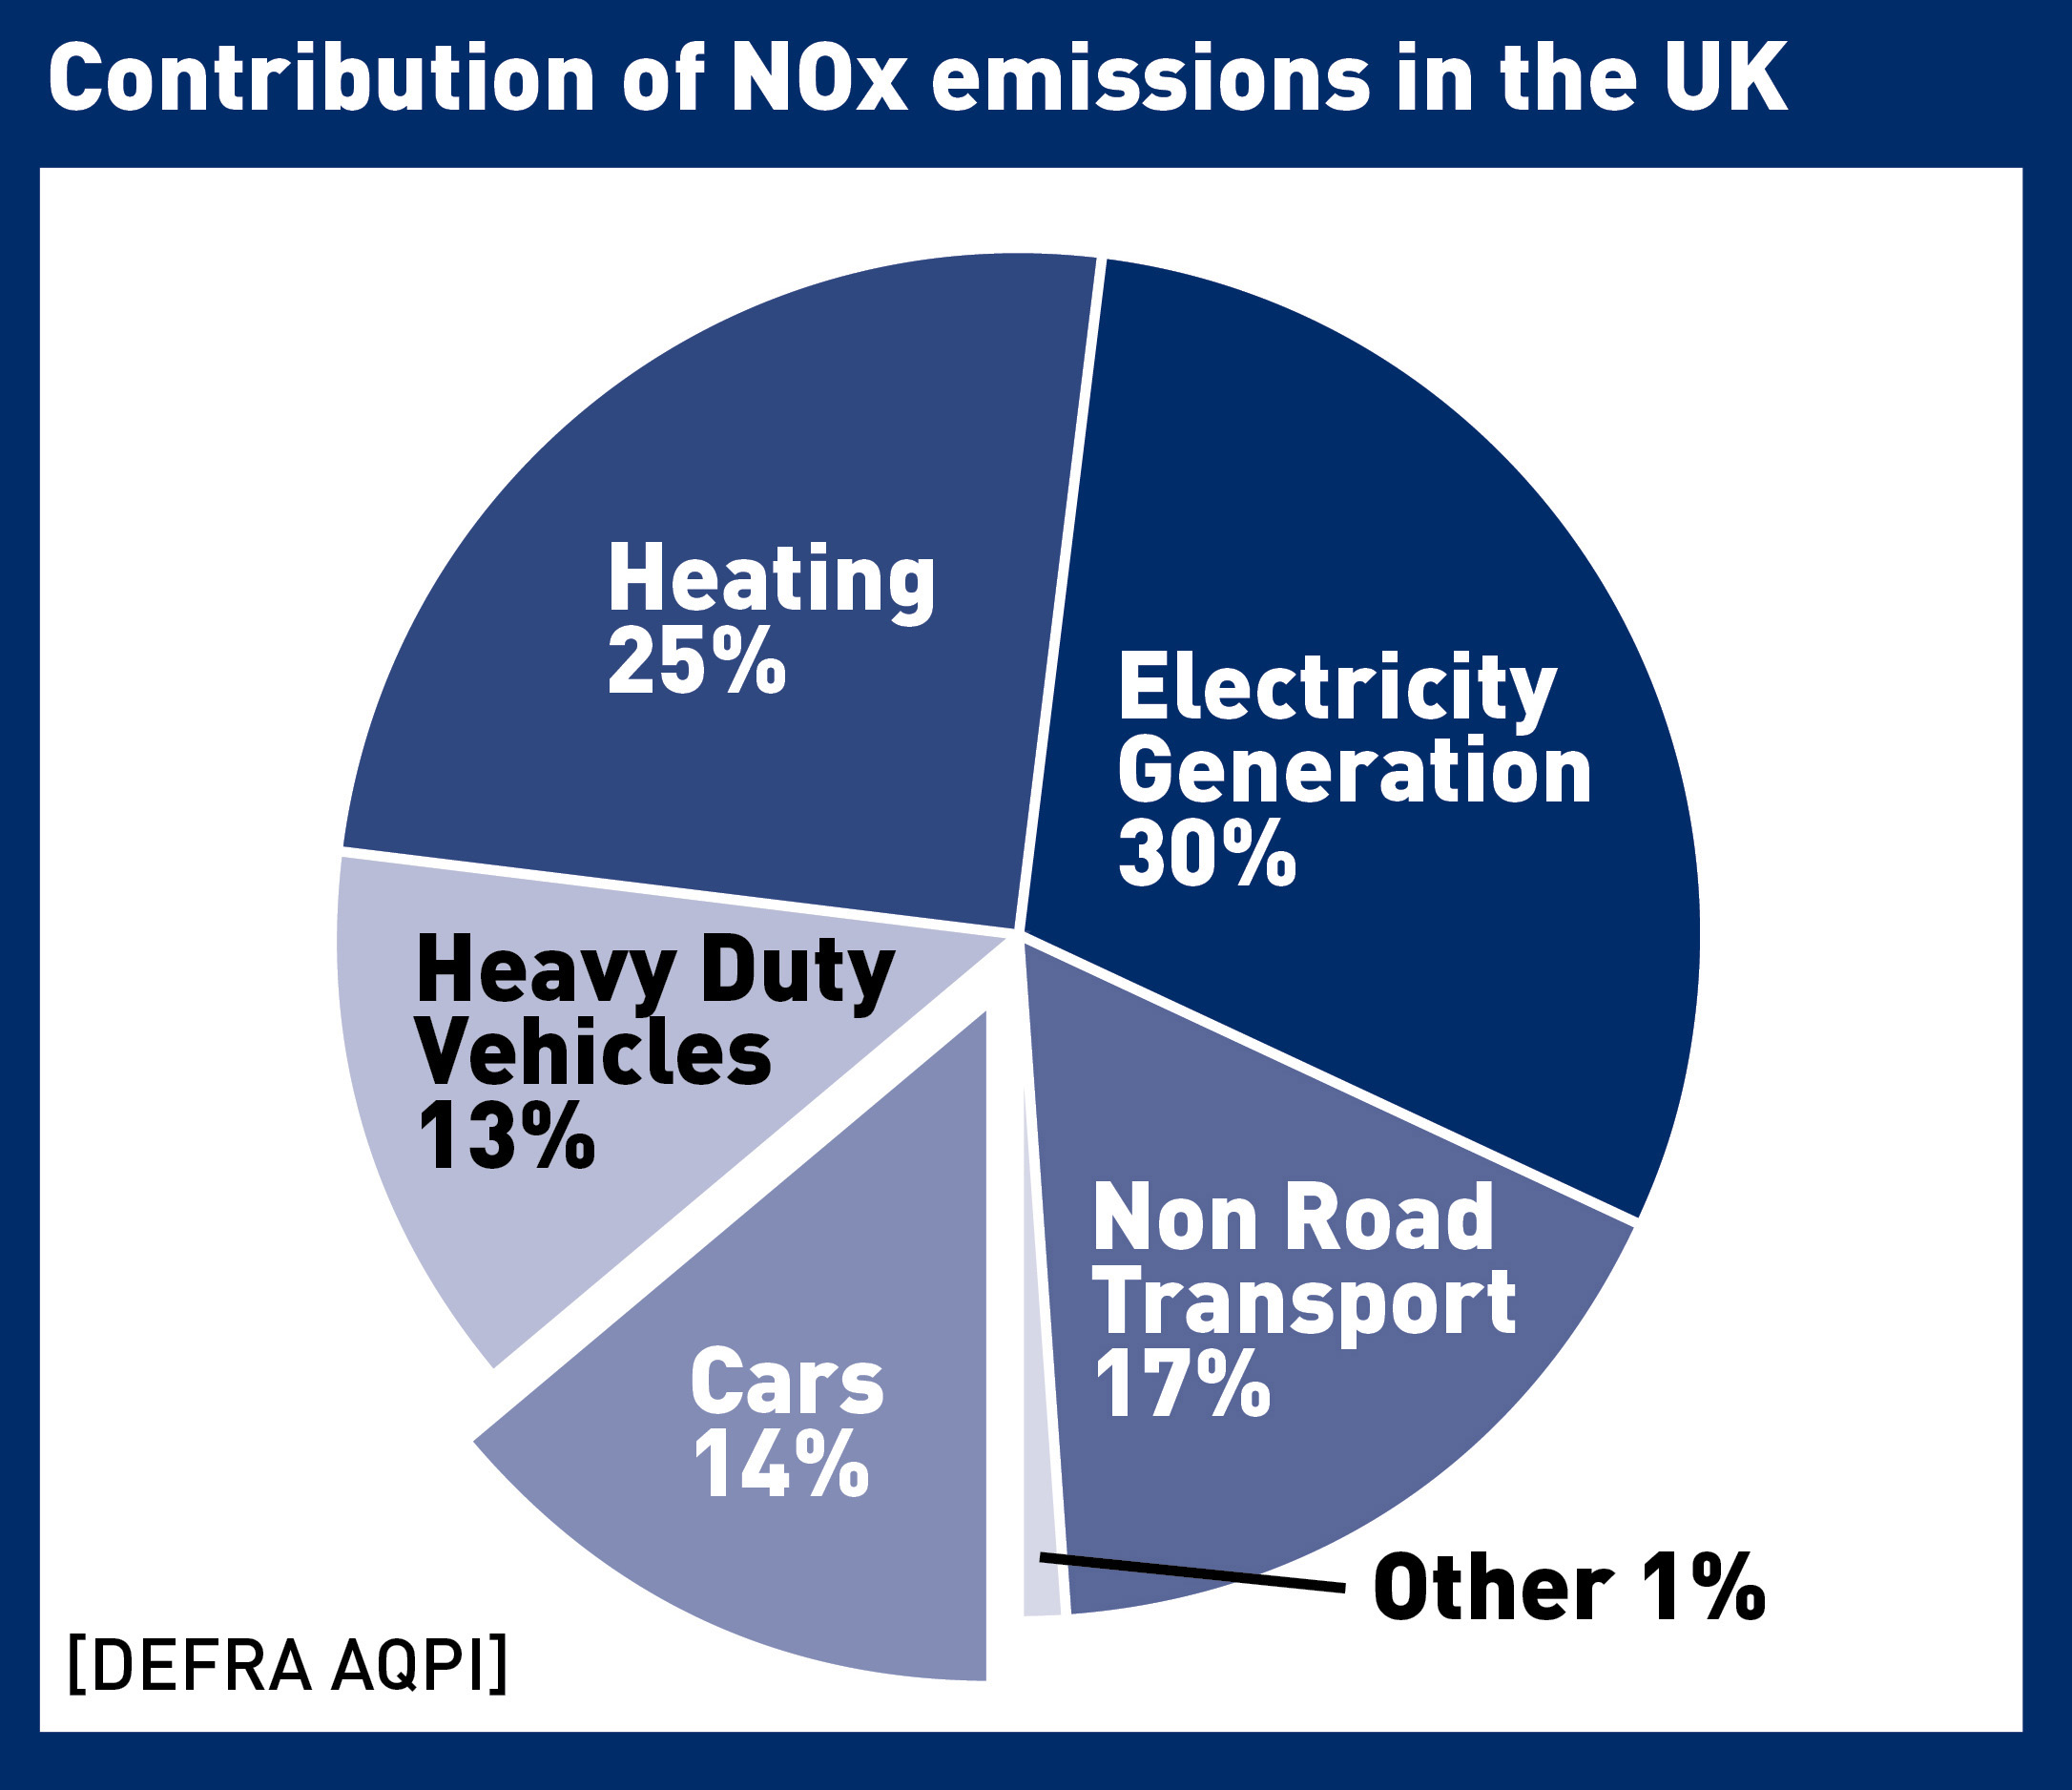 contirbution_of_nox_emissions